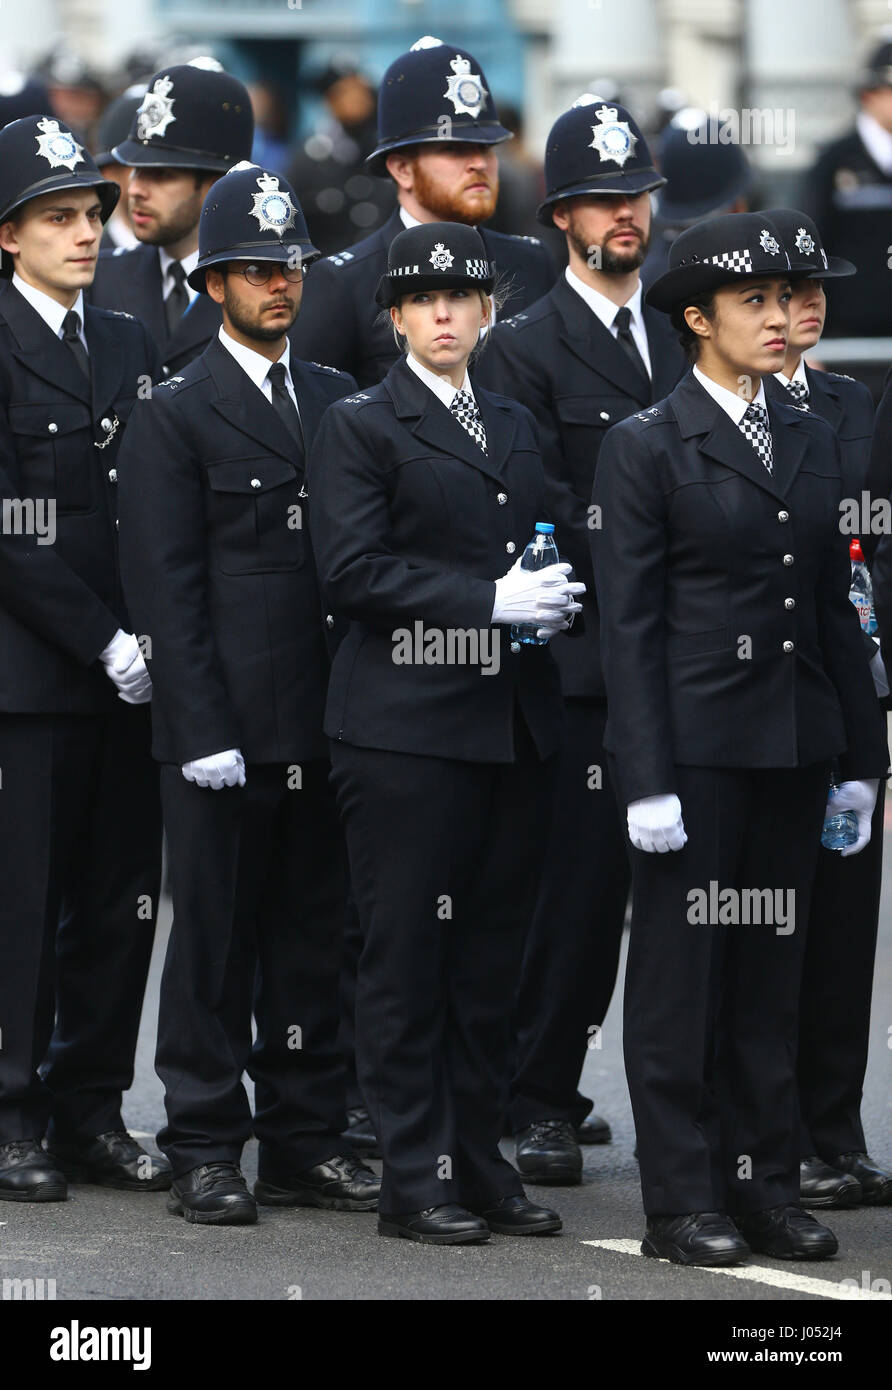 Police officers are positioned near Southwark Cathedral in London, before the funeral service of Pc Keith Palmer. - Stock Image